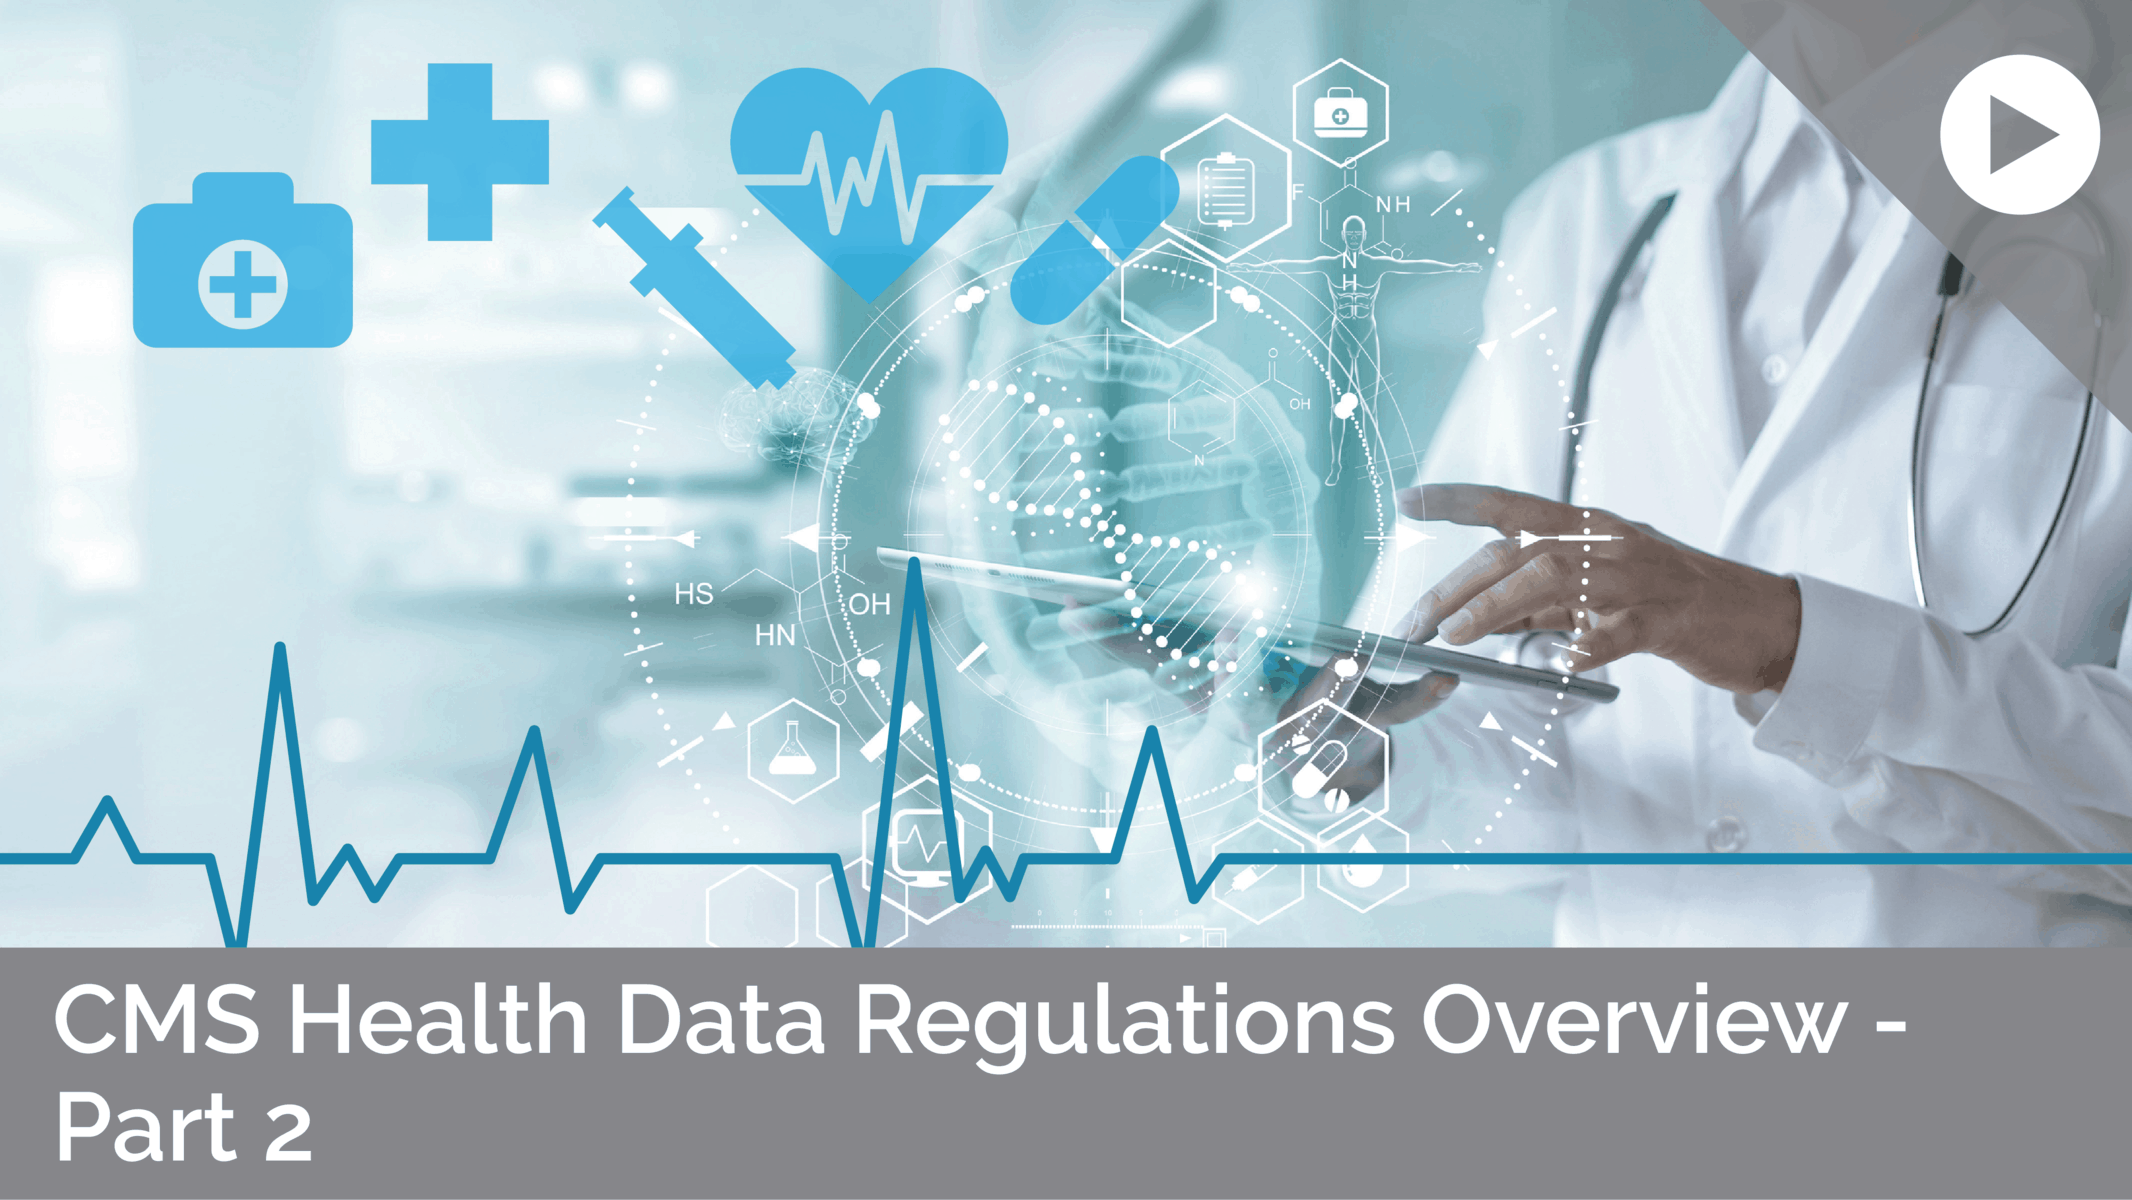 CMS Health Data Regulations Technical Overview